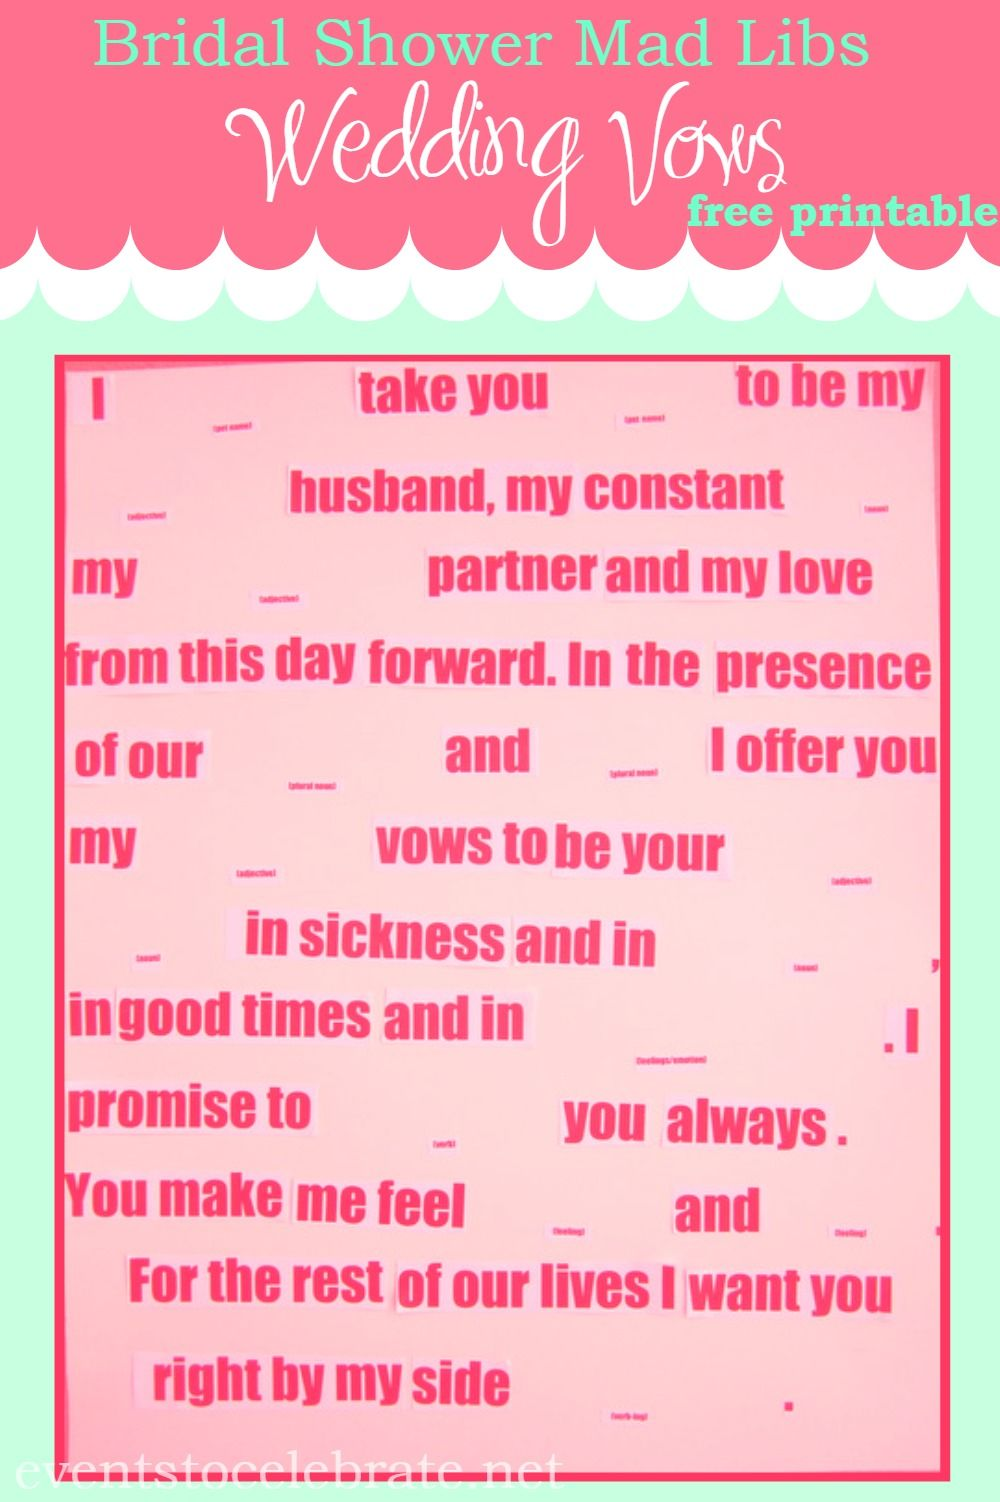 Mad Libs Wedding Vows Free Printable Eventstocelebrate